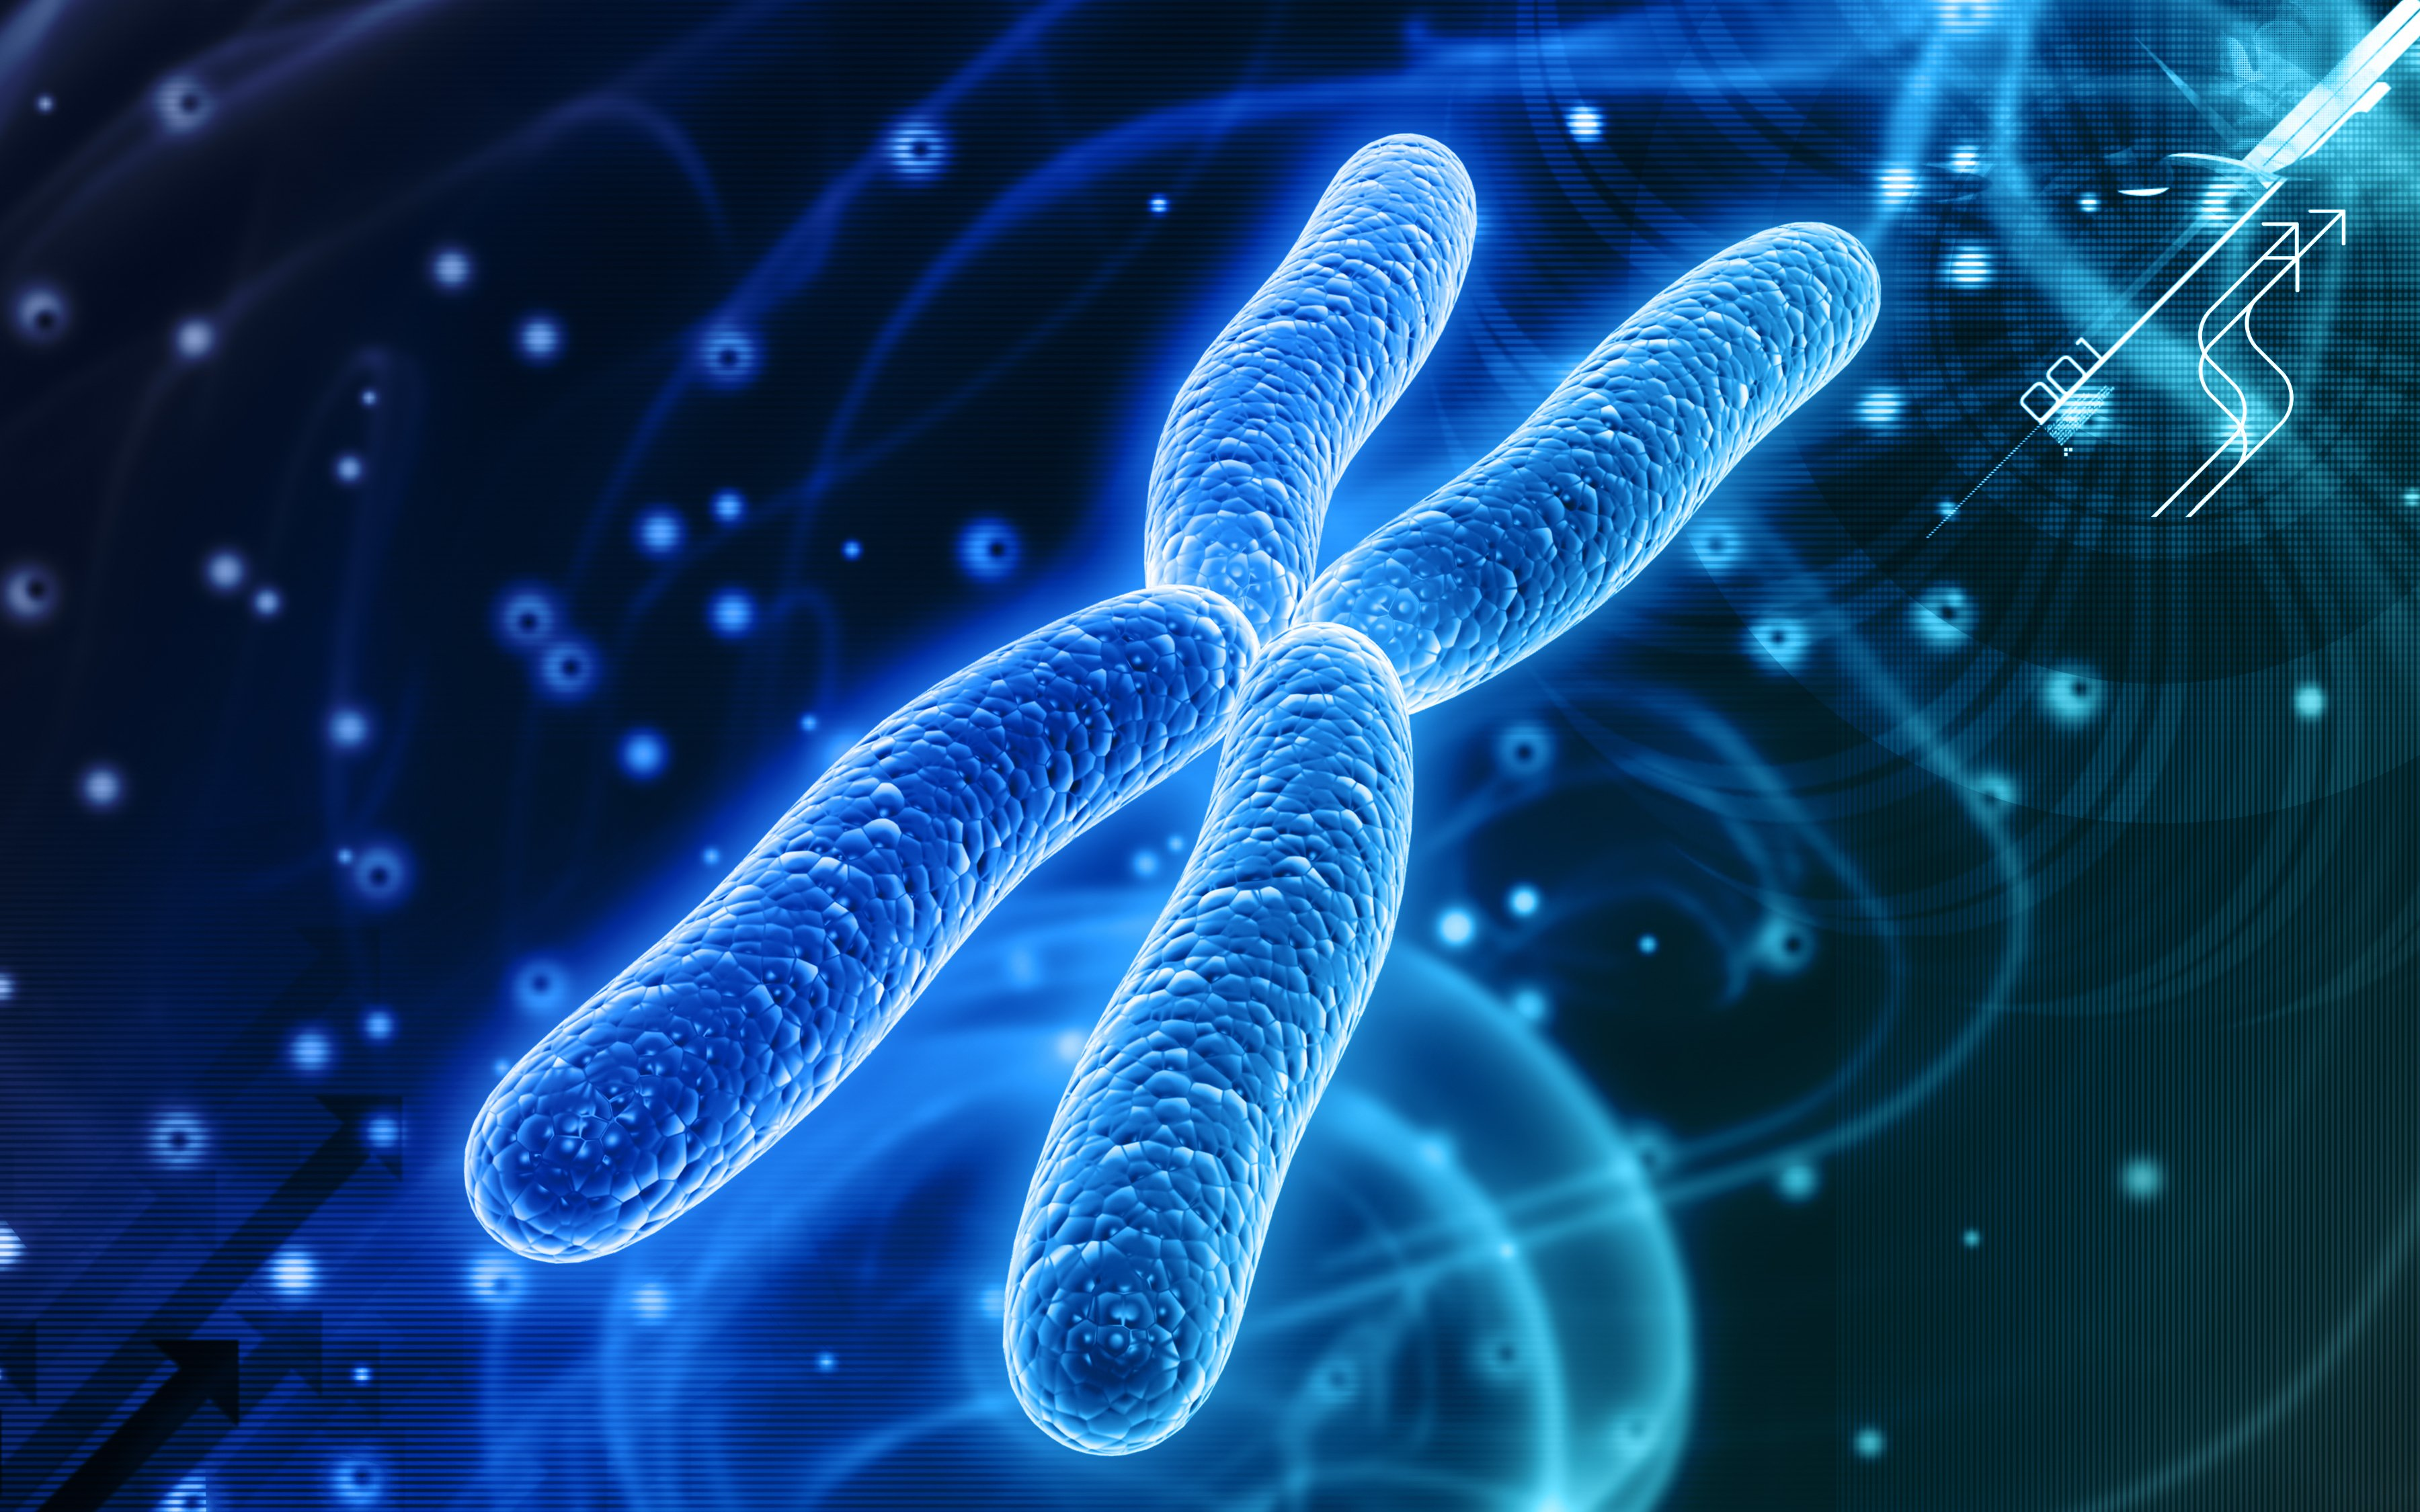 chromosome-dna-pattern-genetic-3d-psychedelic-wallpaper-1